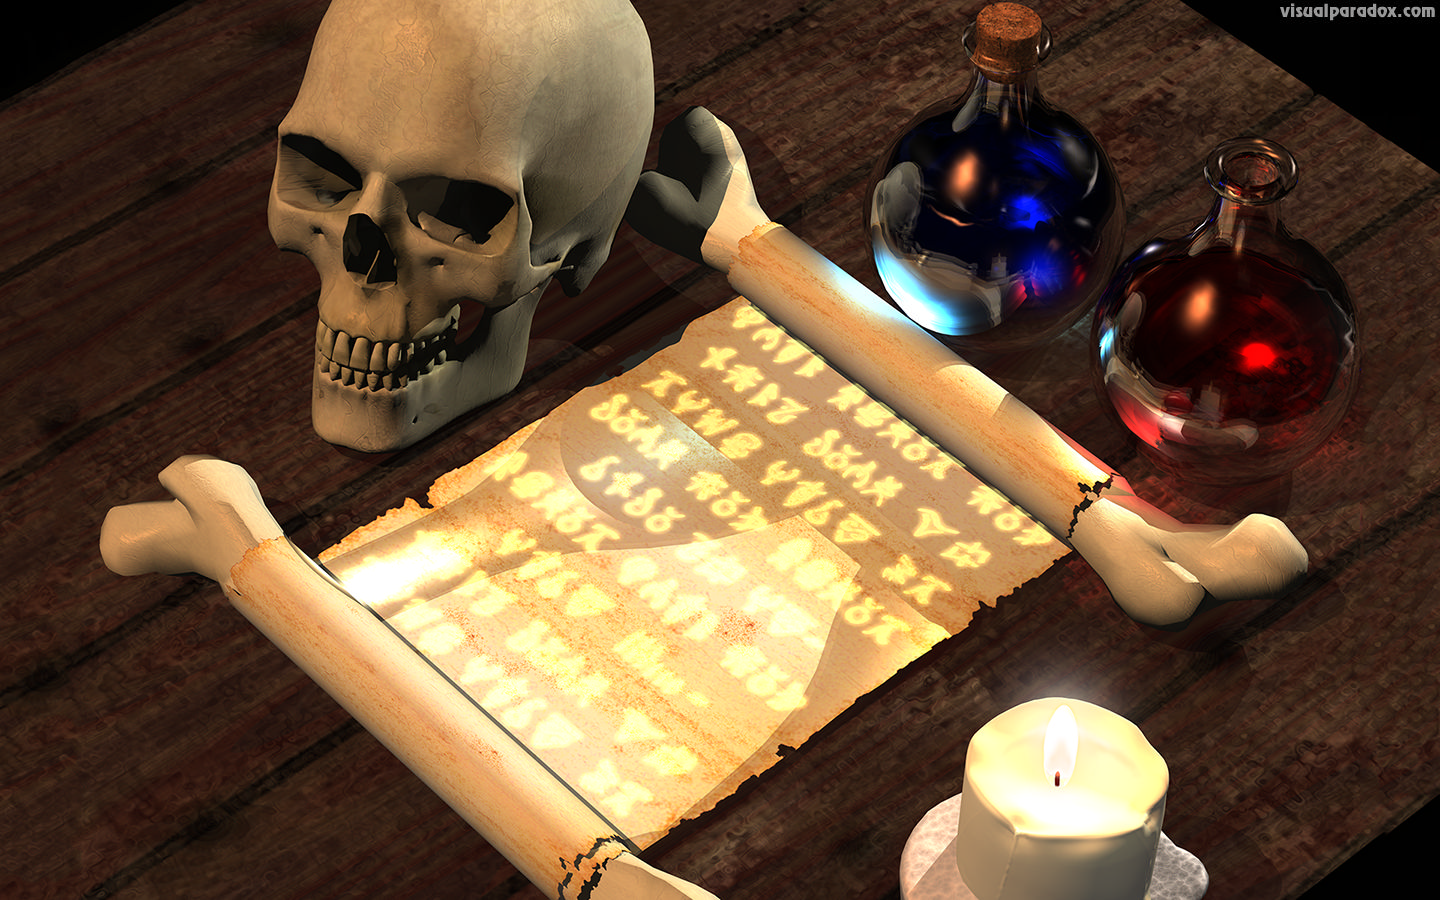 magic, spell, scroll, text, writing, tale, fantasy, skull, potion, spells, potions, alchemist, alchemy, 3d, wallpaper